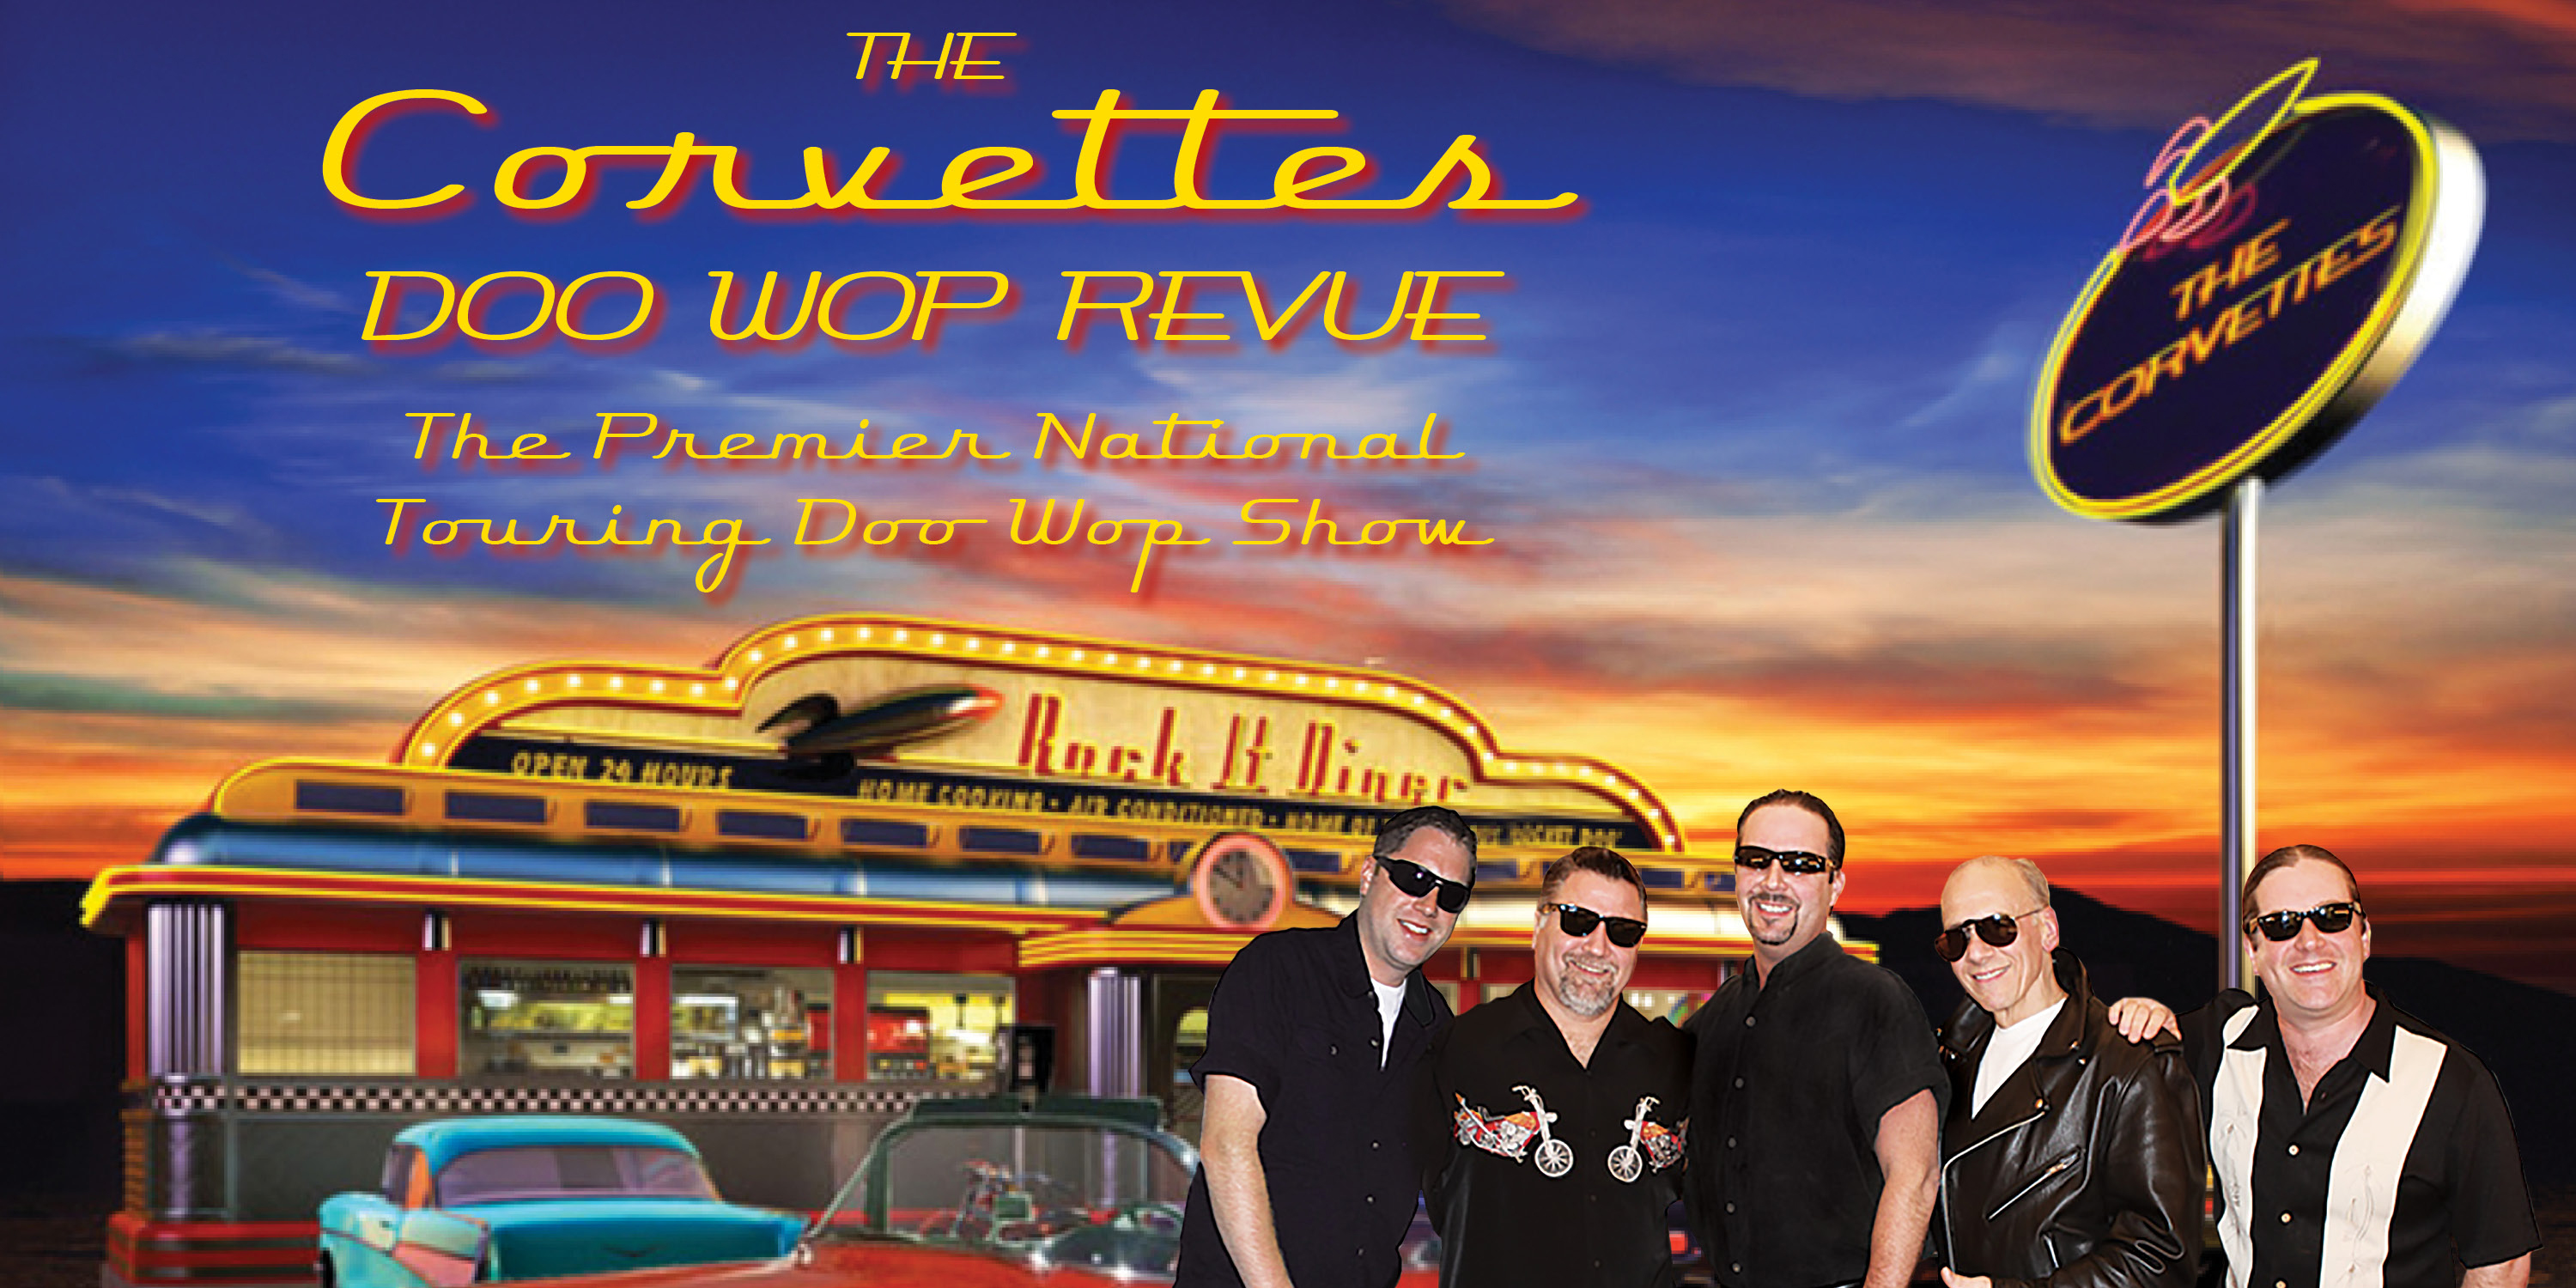 The Corvettes Doo Wop Revue